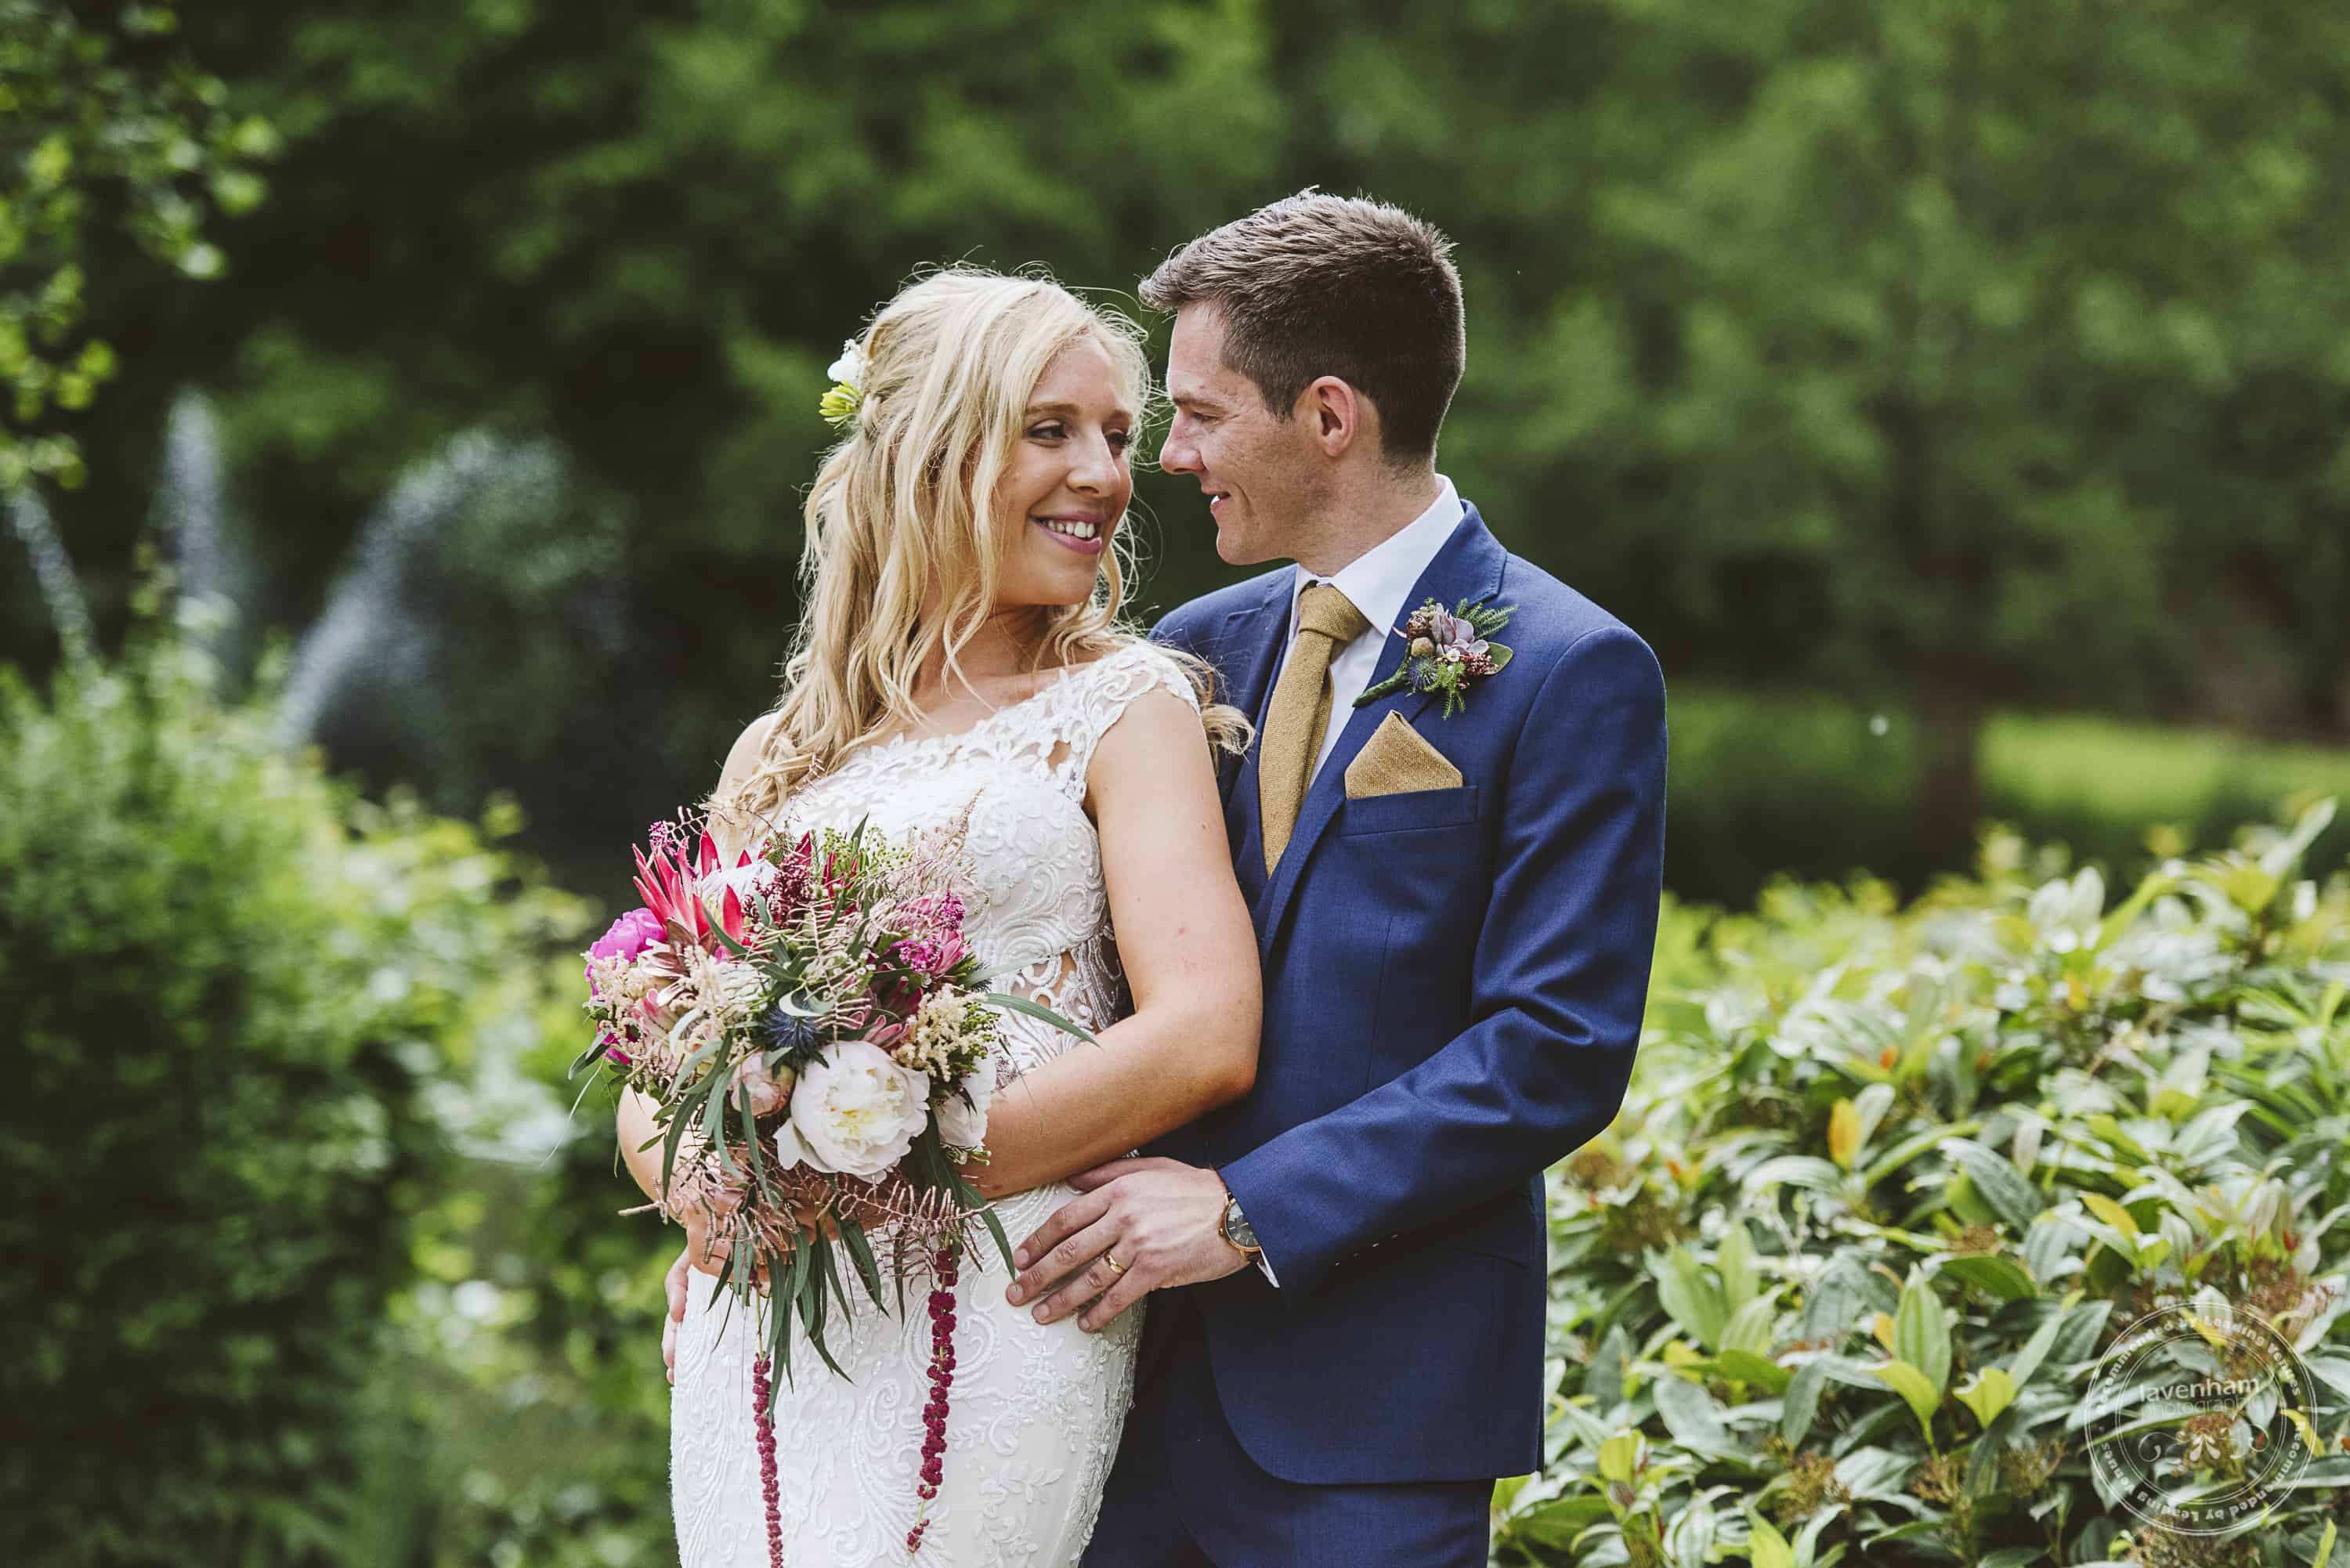 Relaxed, informal wedding photography